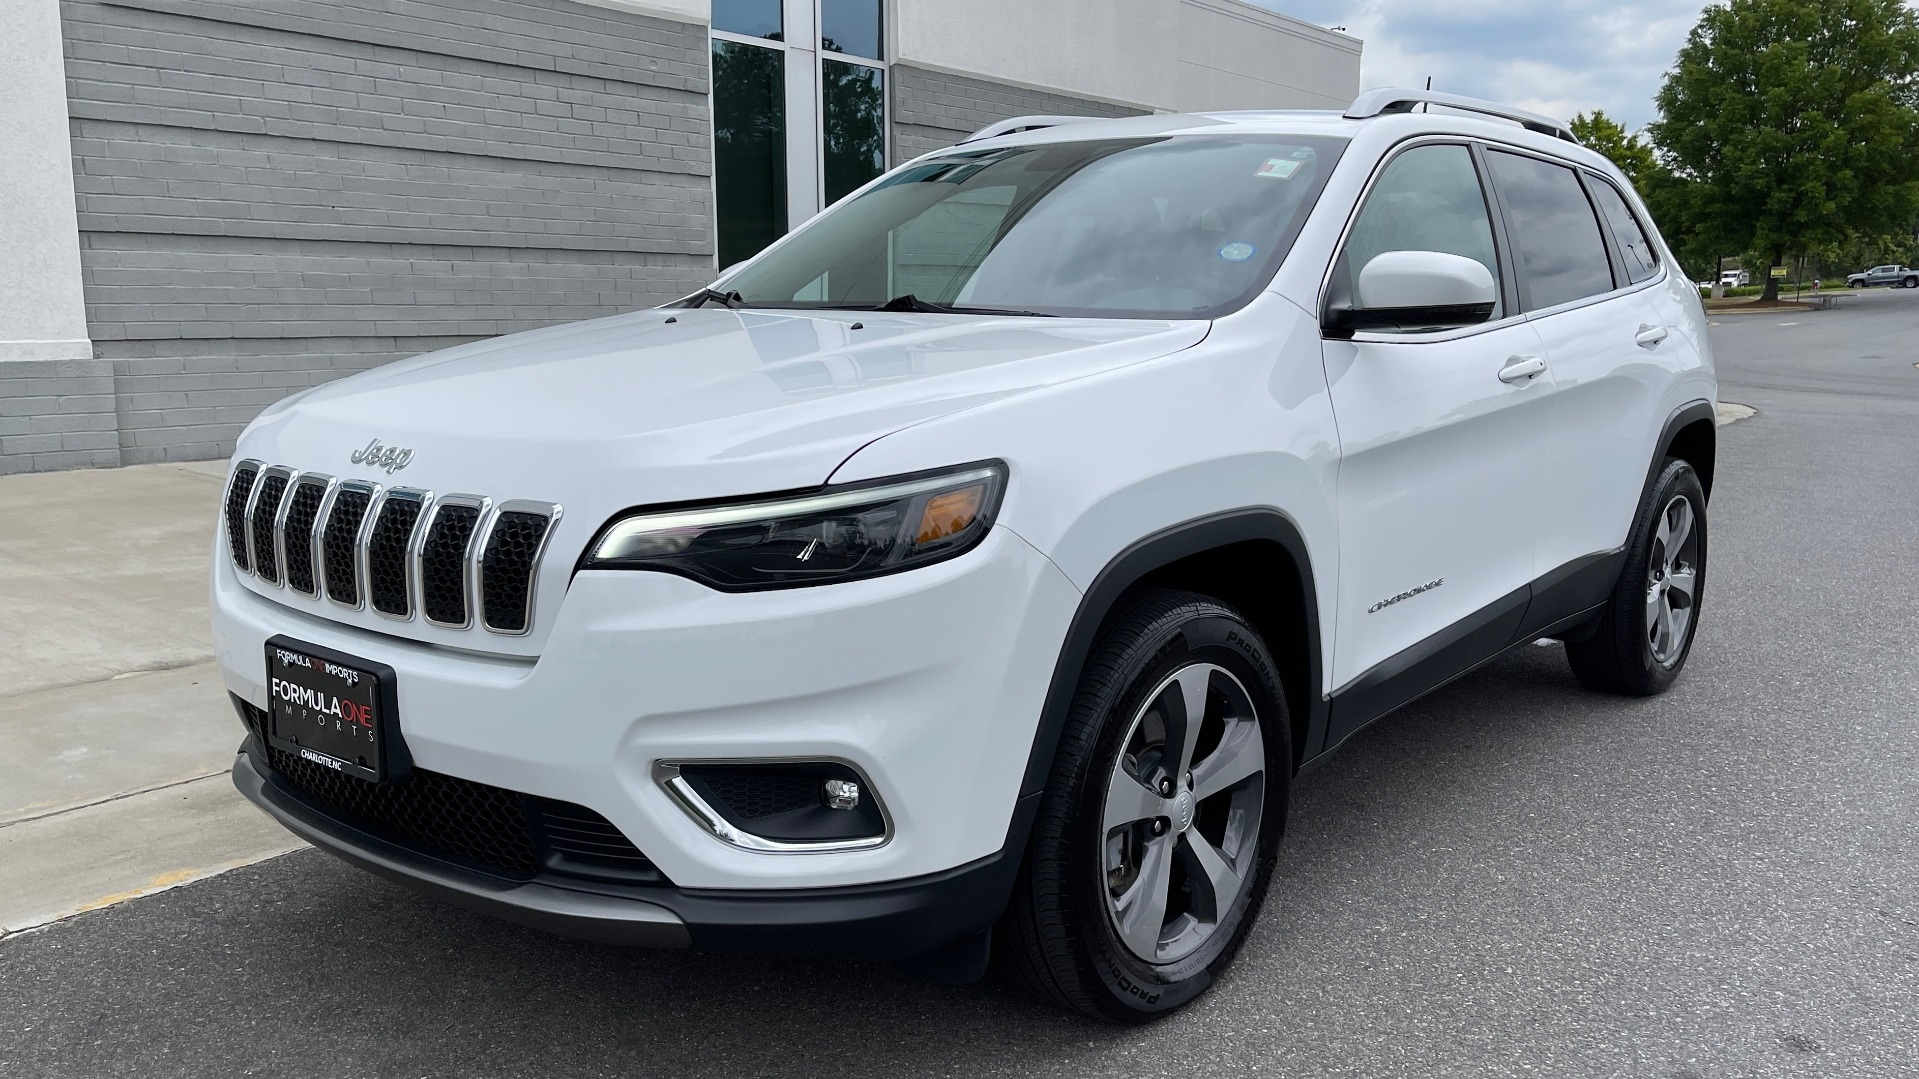 Used 2019 Jeep CHEROKEE LIMITED 4X4 / KEYLESS-GO / BLIND SPOT AND CROSS PATH / REMOTE START / REARV for sale $26,995 at Formula Imports in Charlotte NC 28227 3